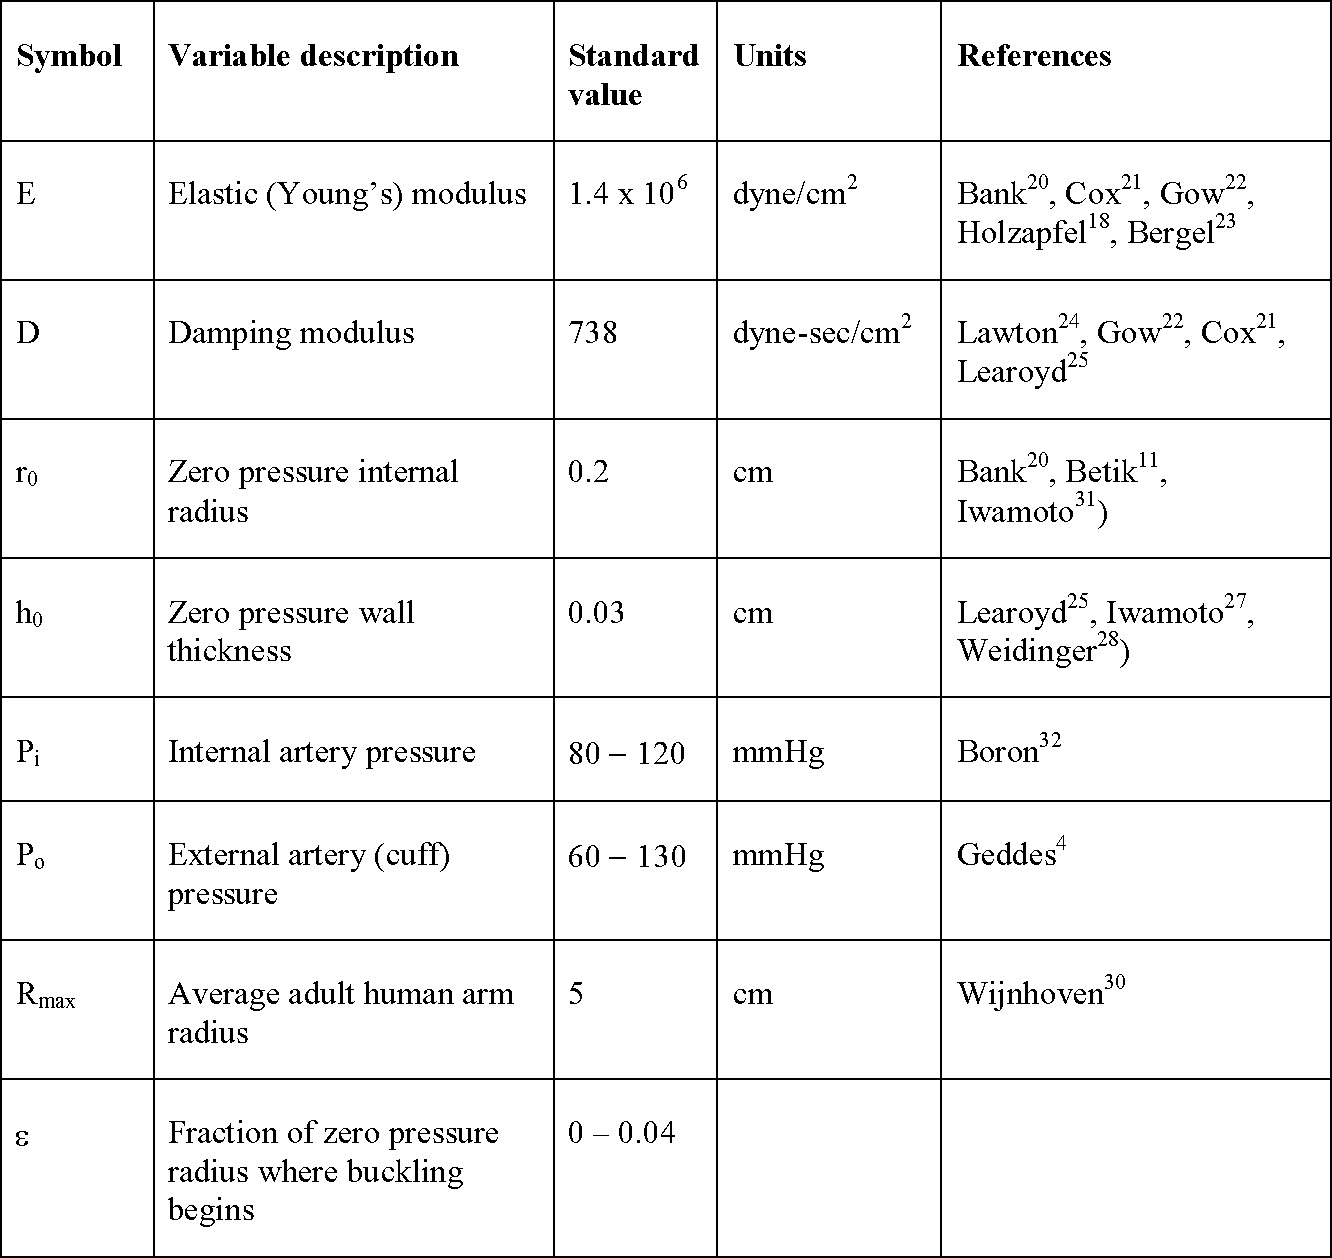 Table 1 from The origin of Korotkoff sounds and the accuracy of